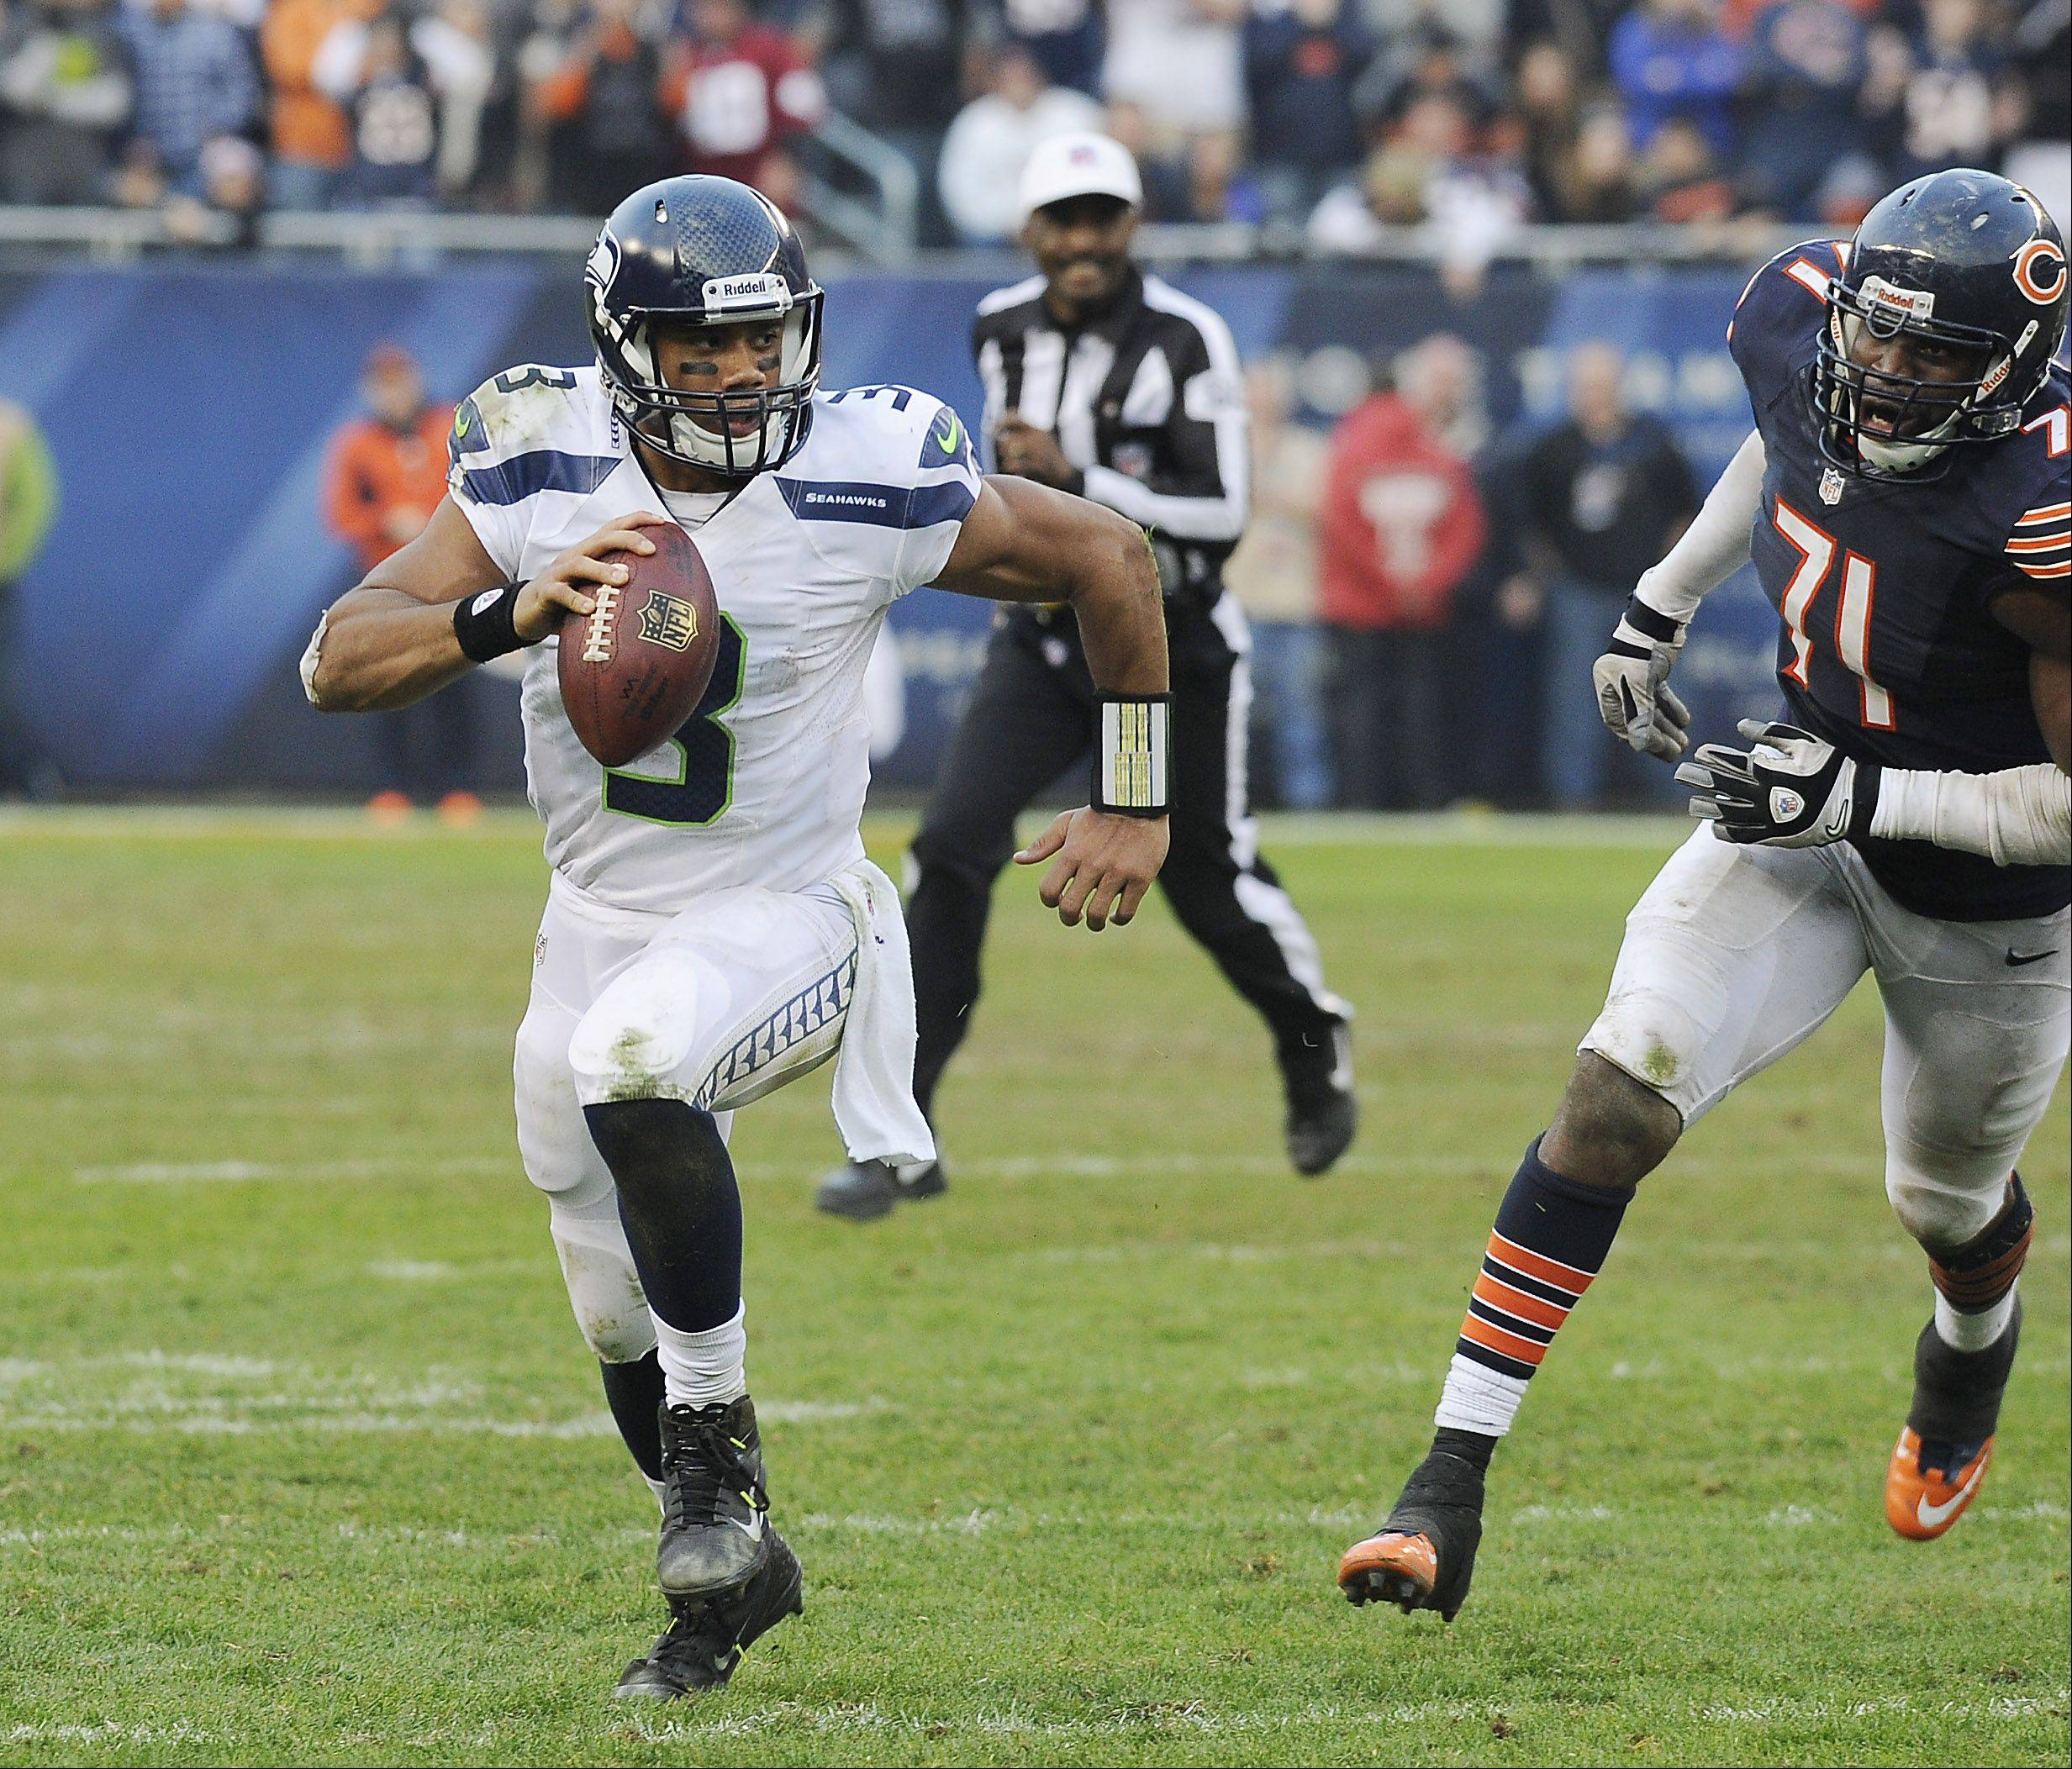 Seahawks quarterback Russell Wilson is on the run from Israel Idonije in the fourth quarter of the Bears' overtime loss Sunday.